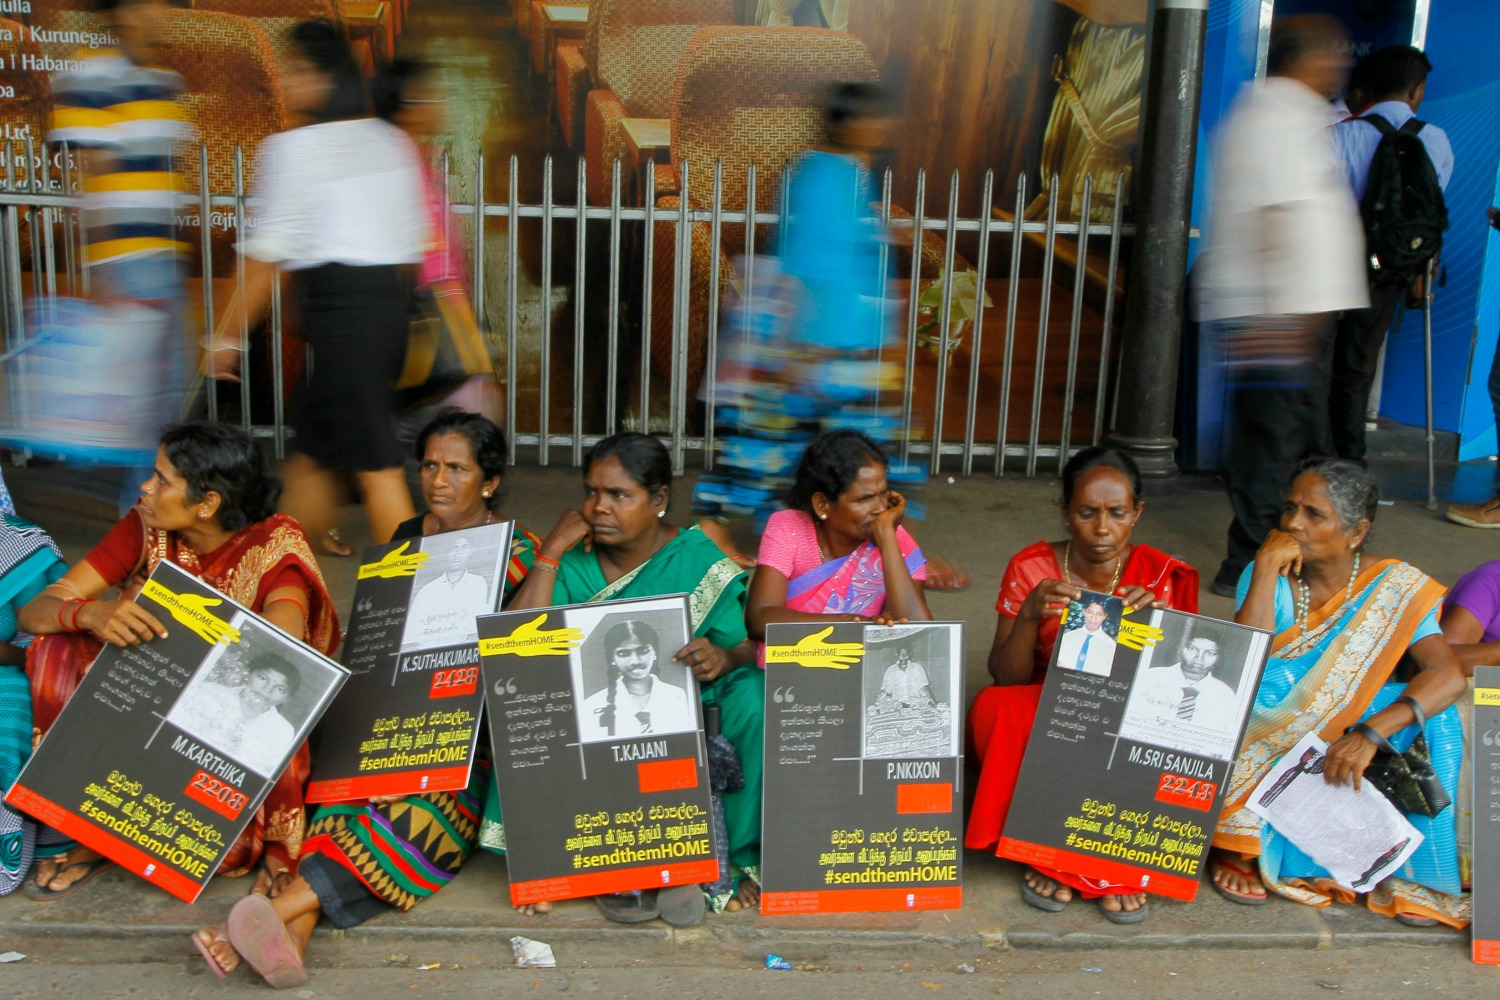 ** HOLD TO GO WITH STORY SLUGGED SRI LANKA SLOWLY HEALING BY KRISHAN FRANCIS**   FILE-In this Monday, April 6, 2015, file photo, Sri Lankan ethnic Tamil women sit holding placards with portraits of their missing relatives as they protest out side a railway station in Colombo, Sri Lanka. Seven years since the end of a brutal civil war, Sri Lanka faces the daunting twin challenges of uniting ethnic communities polarized due to decades of acrimony and violence while also dealing with the divisive issue of addressing war crimes allegations. (AP Photo/Eranga Jayawardena, File)